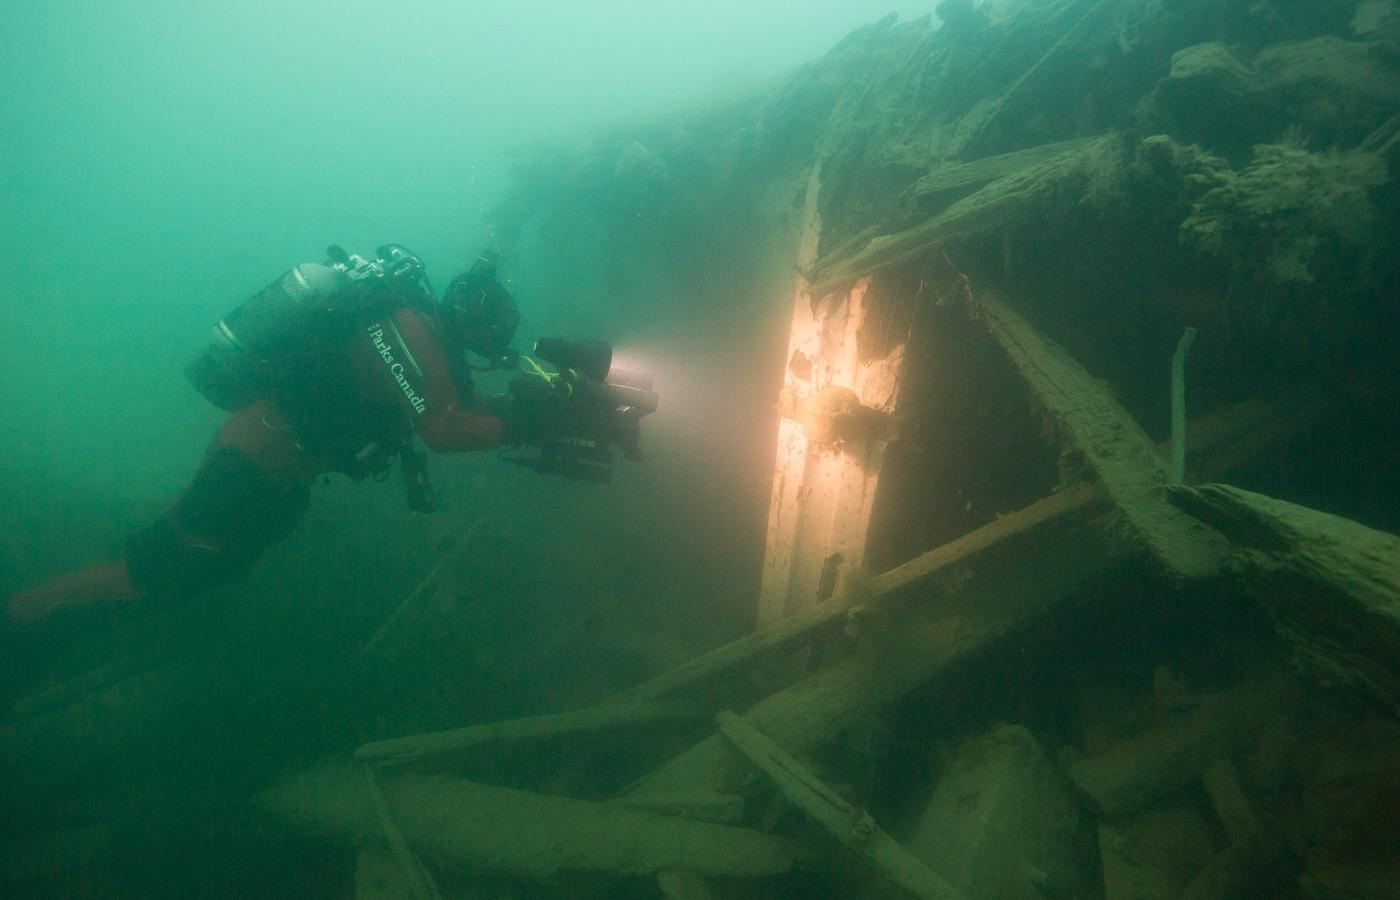 An underwater image of a Parks Canada diver examining the wreckage of a ship